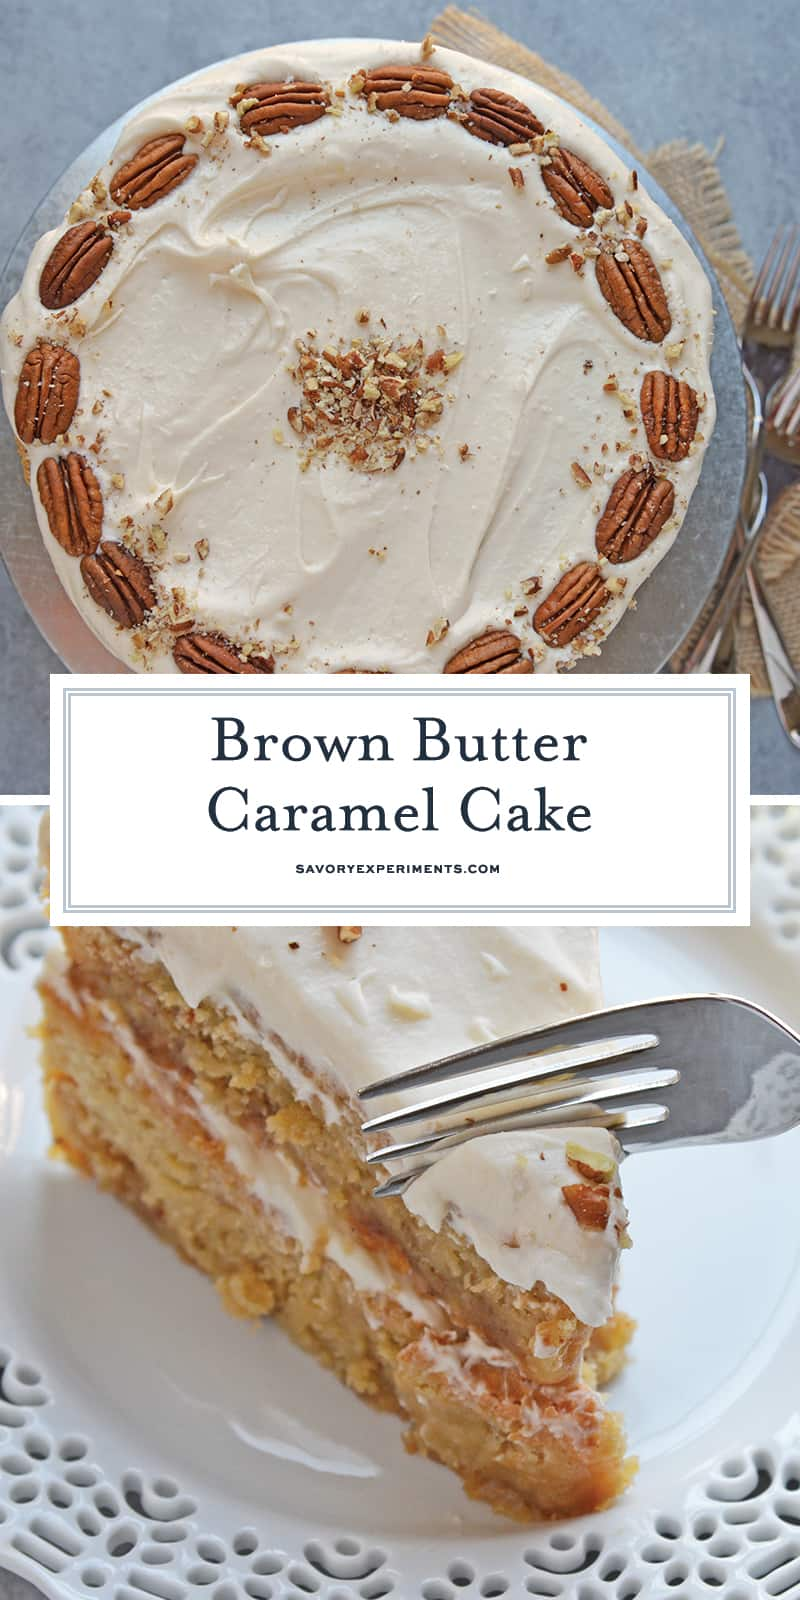 Brown Butter Caramel Cake is a two layer naked cake made with toffee bits and salted caramel frosting! The perfect summer cake or show stopping centerpiece. #caramelcake #brownbuttercake #nakedcakes www.savoryexperiments.com